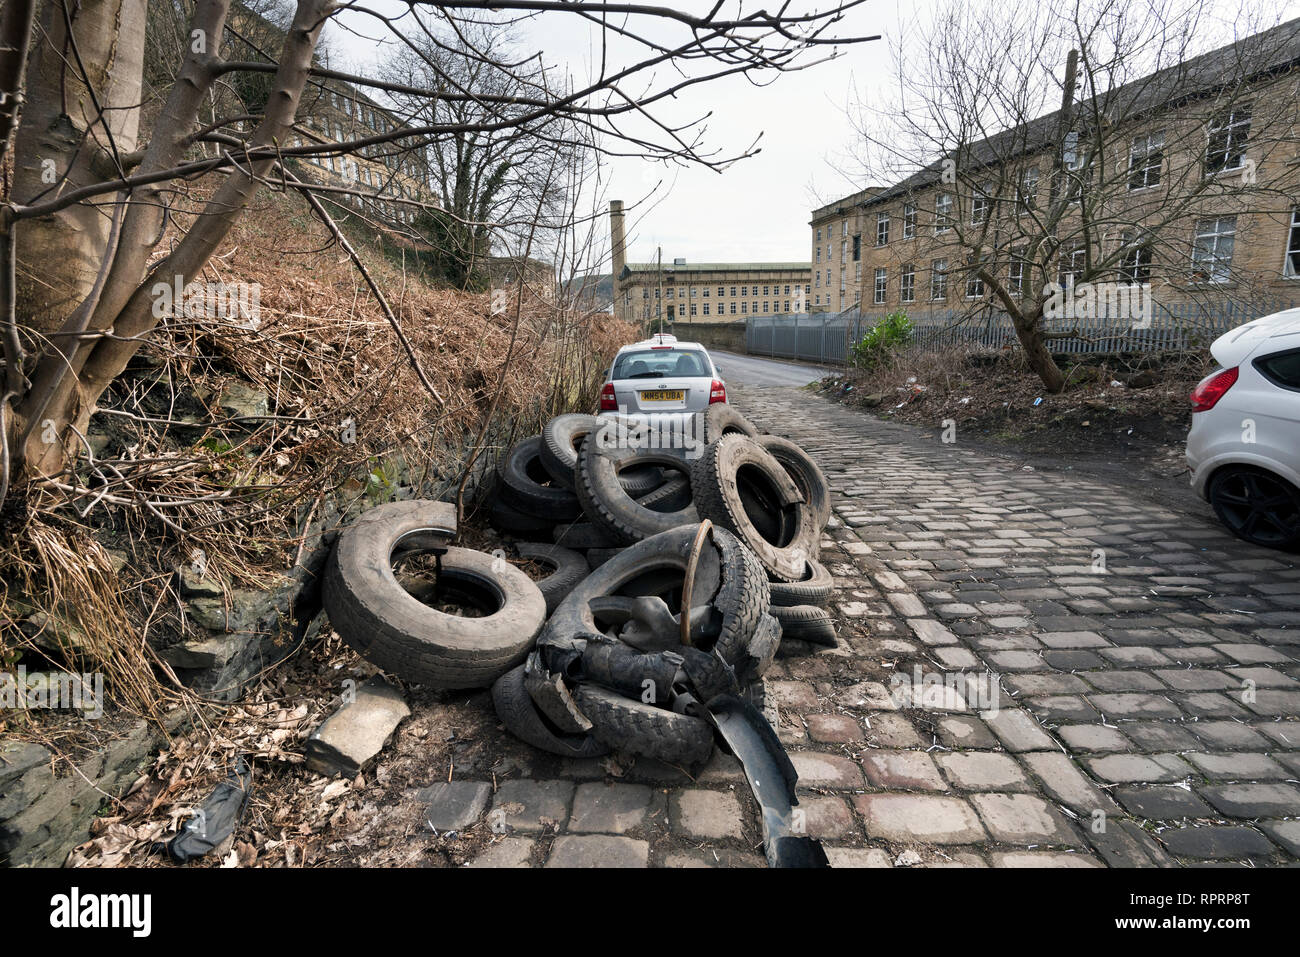 Illegal fly tipping at Dean Clough, Halifax, West Yorkshire, UK - Stock Image